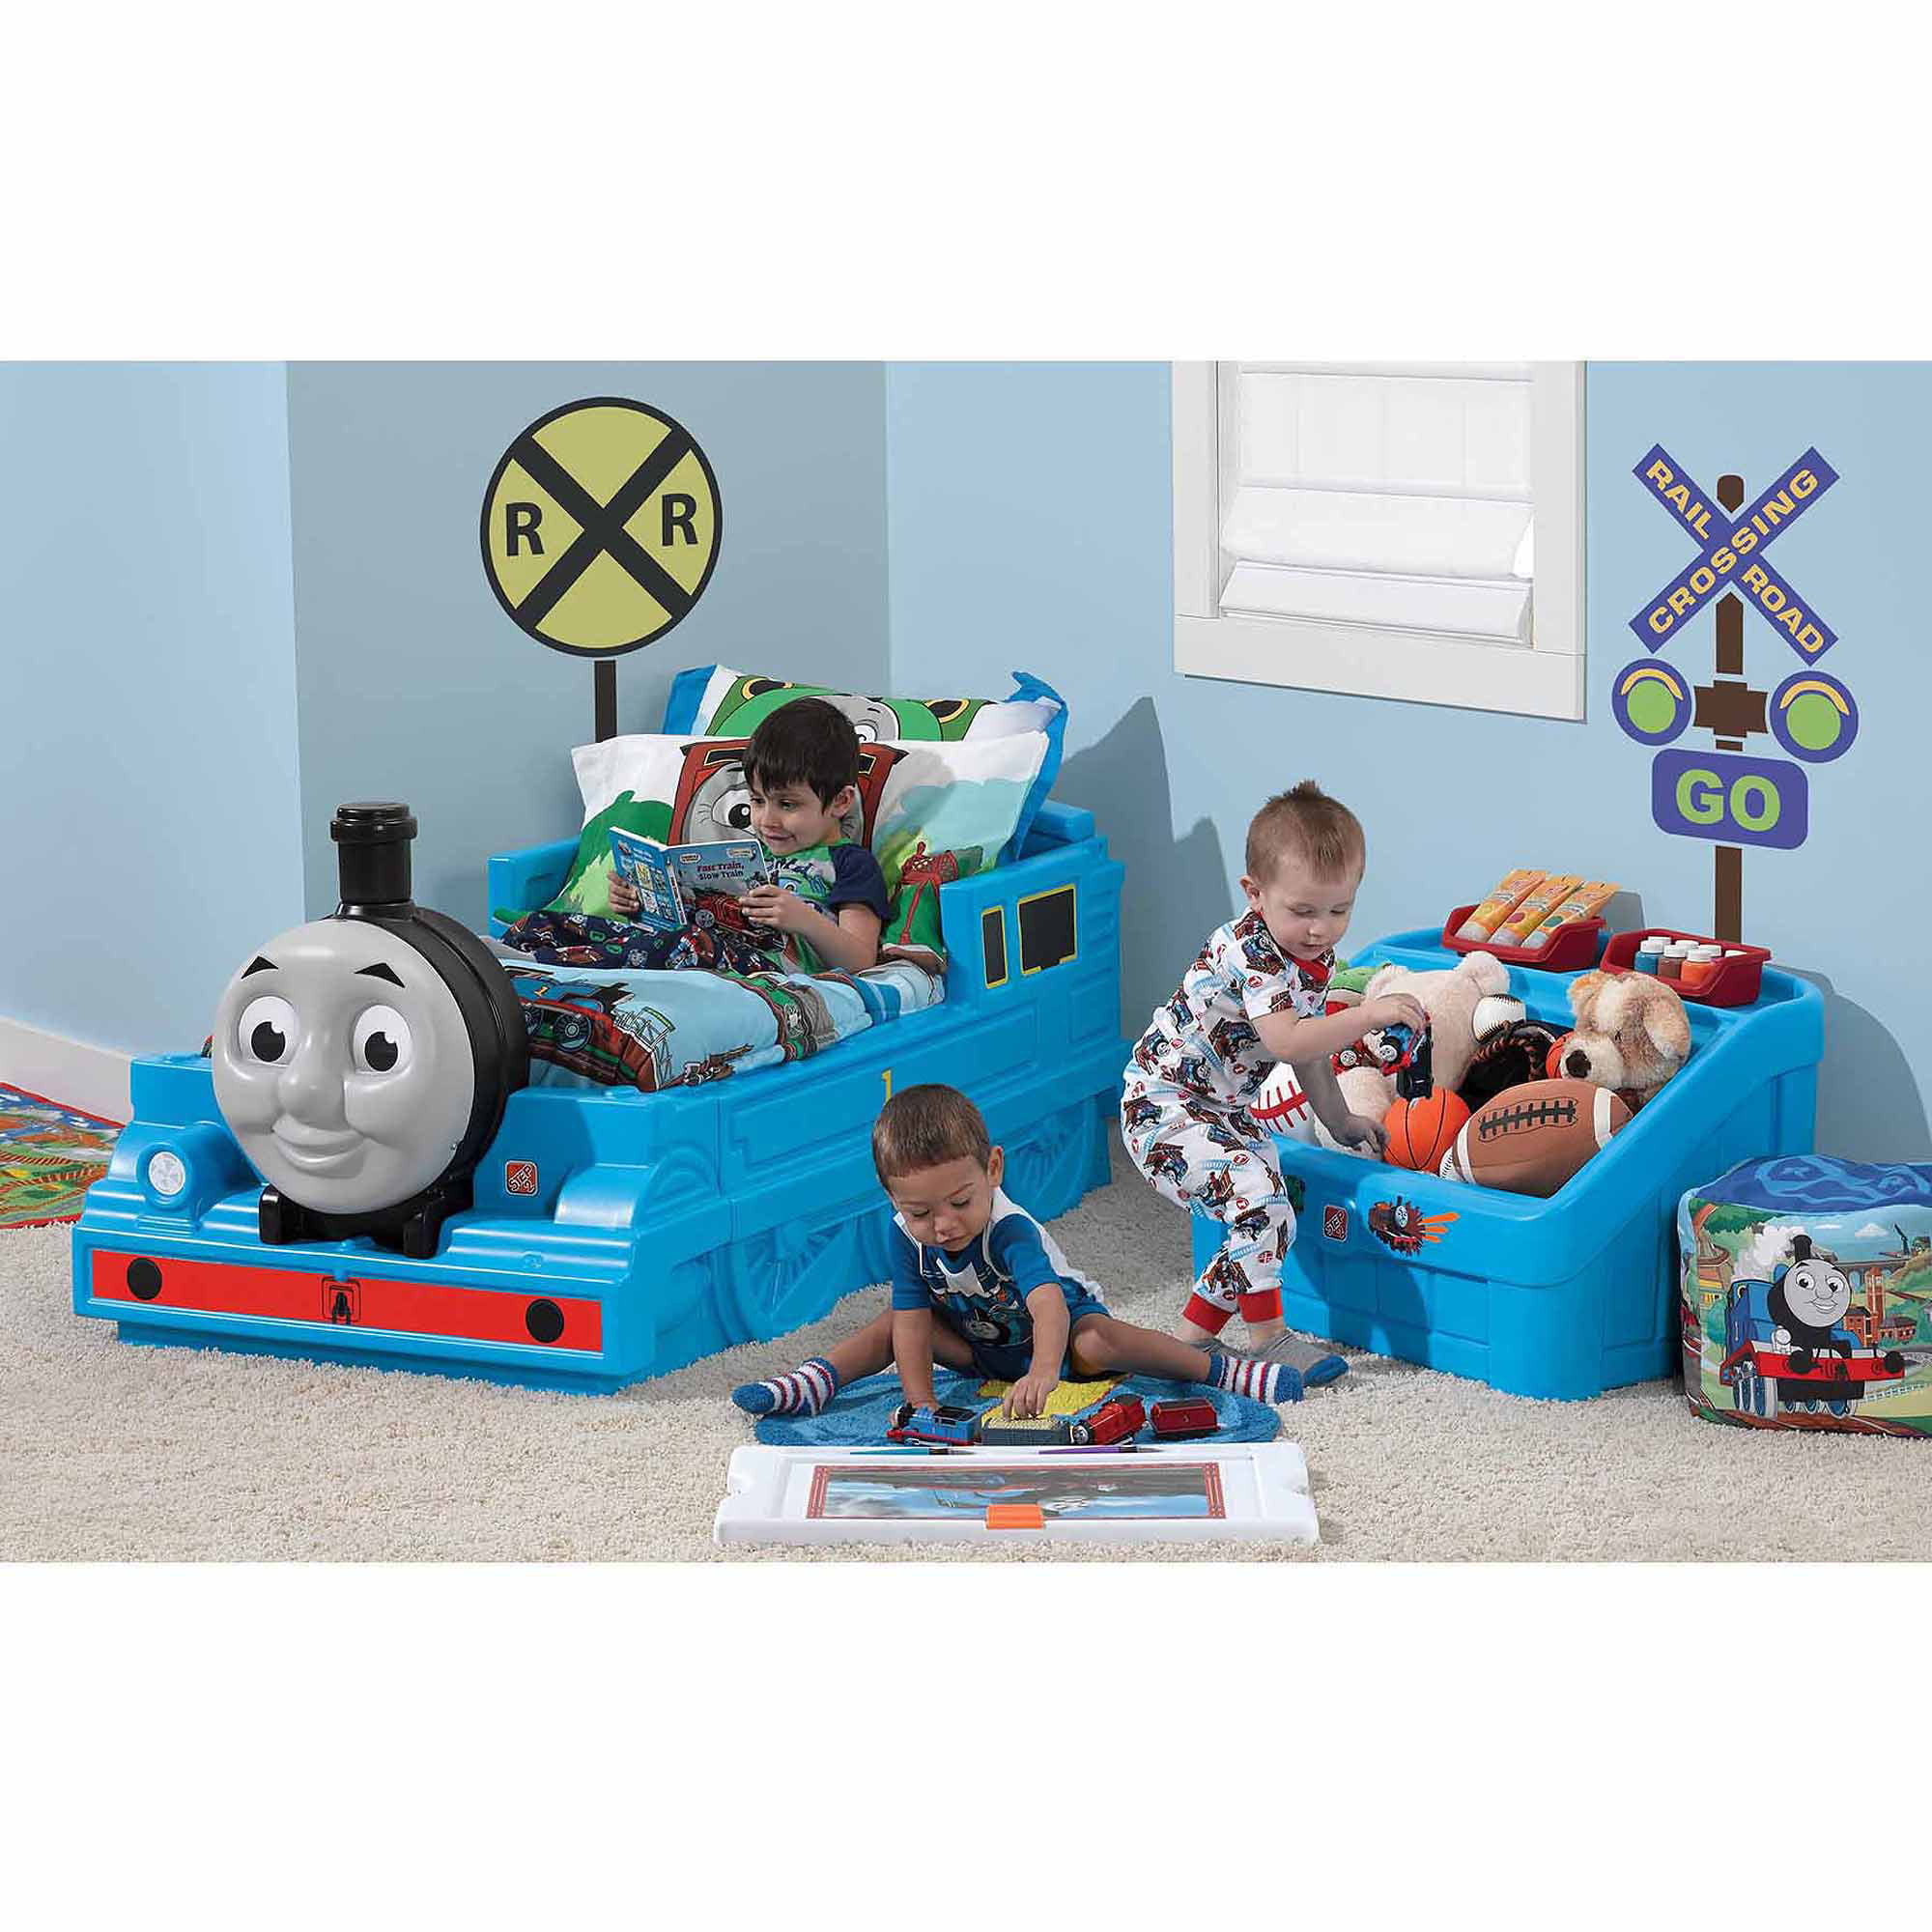 Arte De Mexico Beds Thomas Train Bed Tent And Thomas The Tank Engine Kids